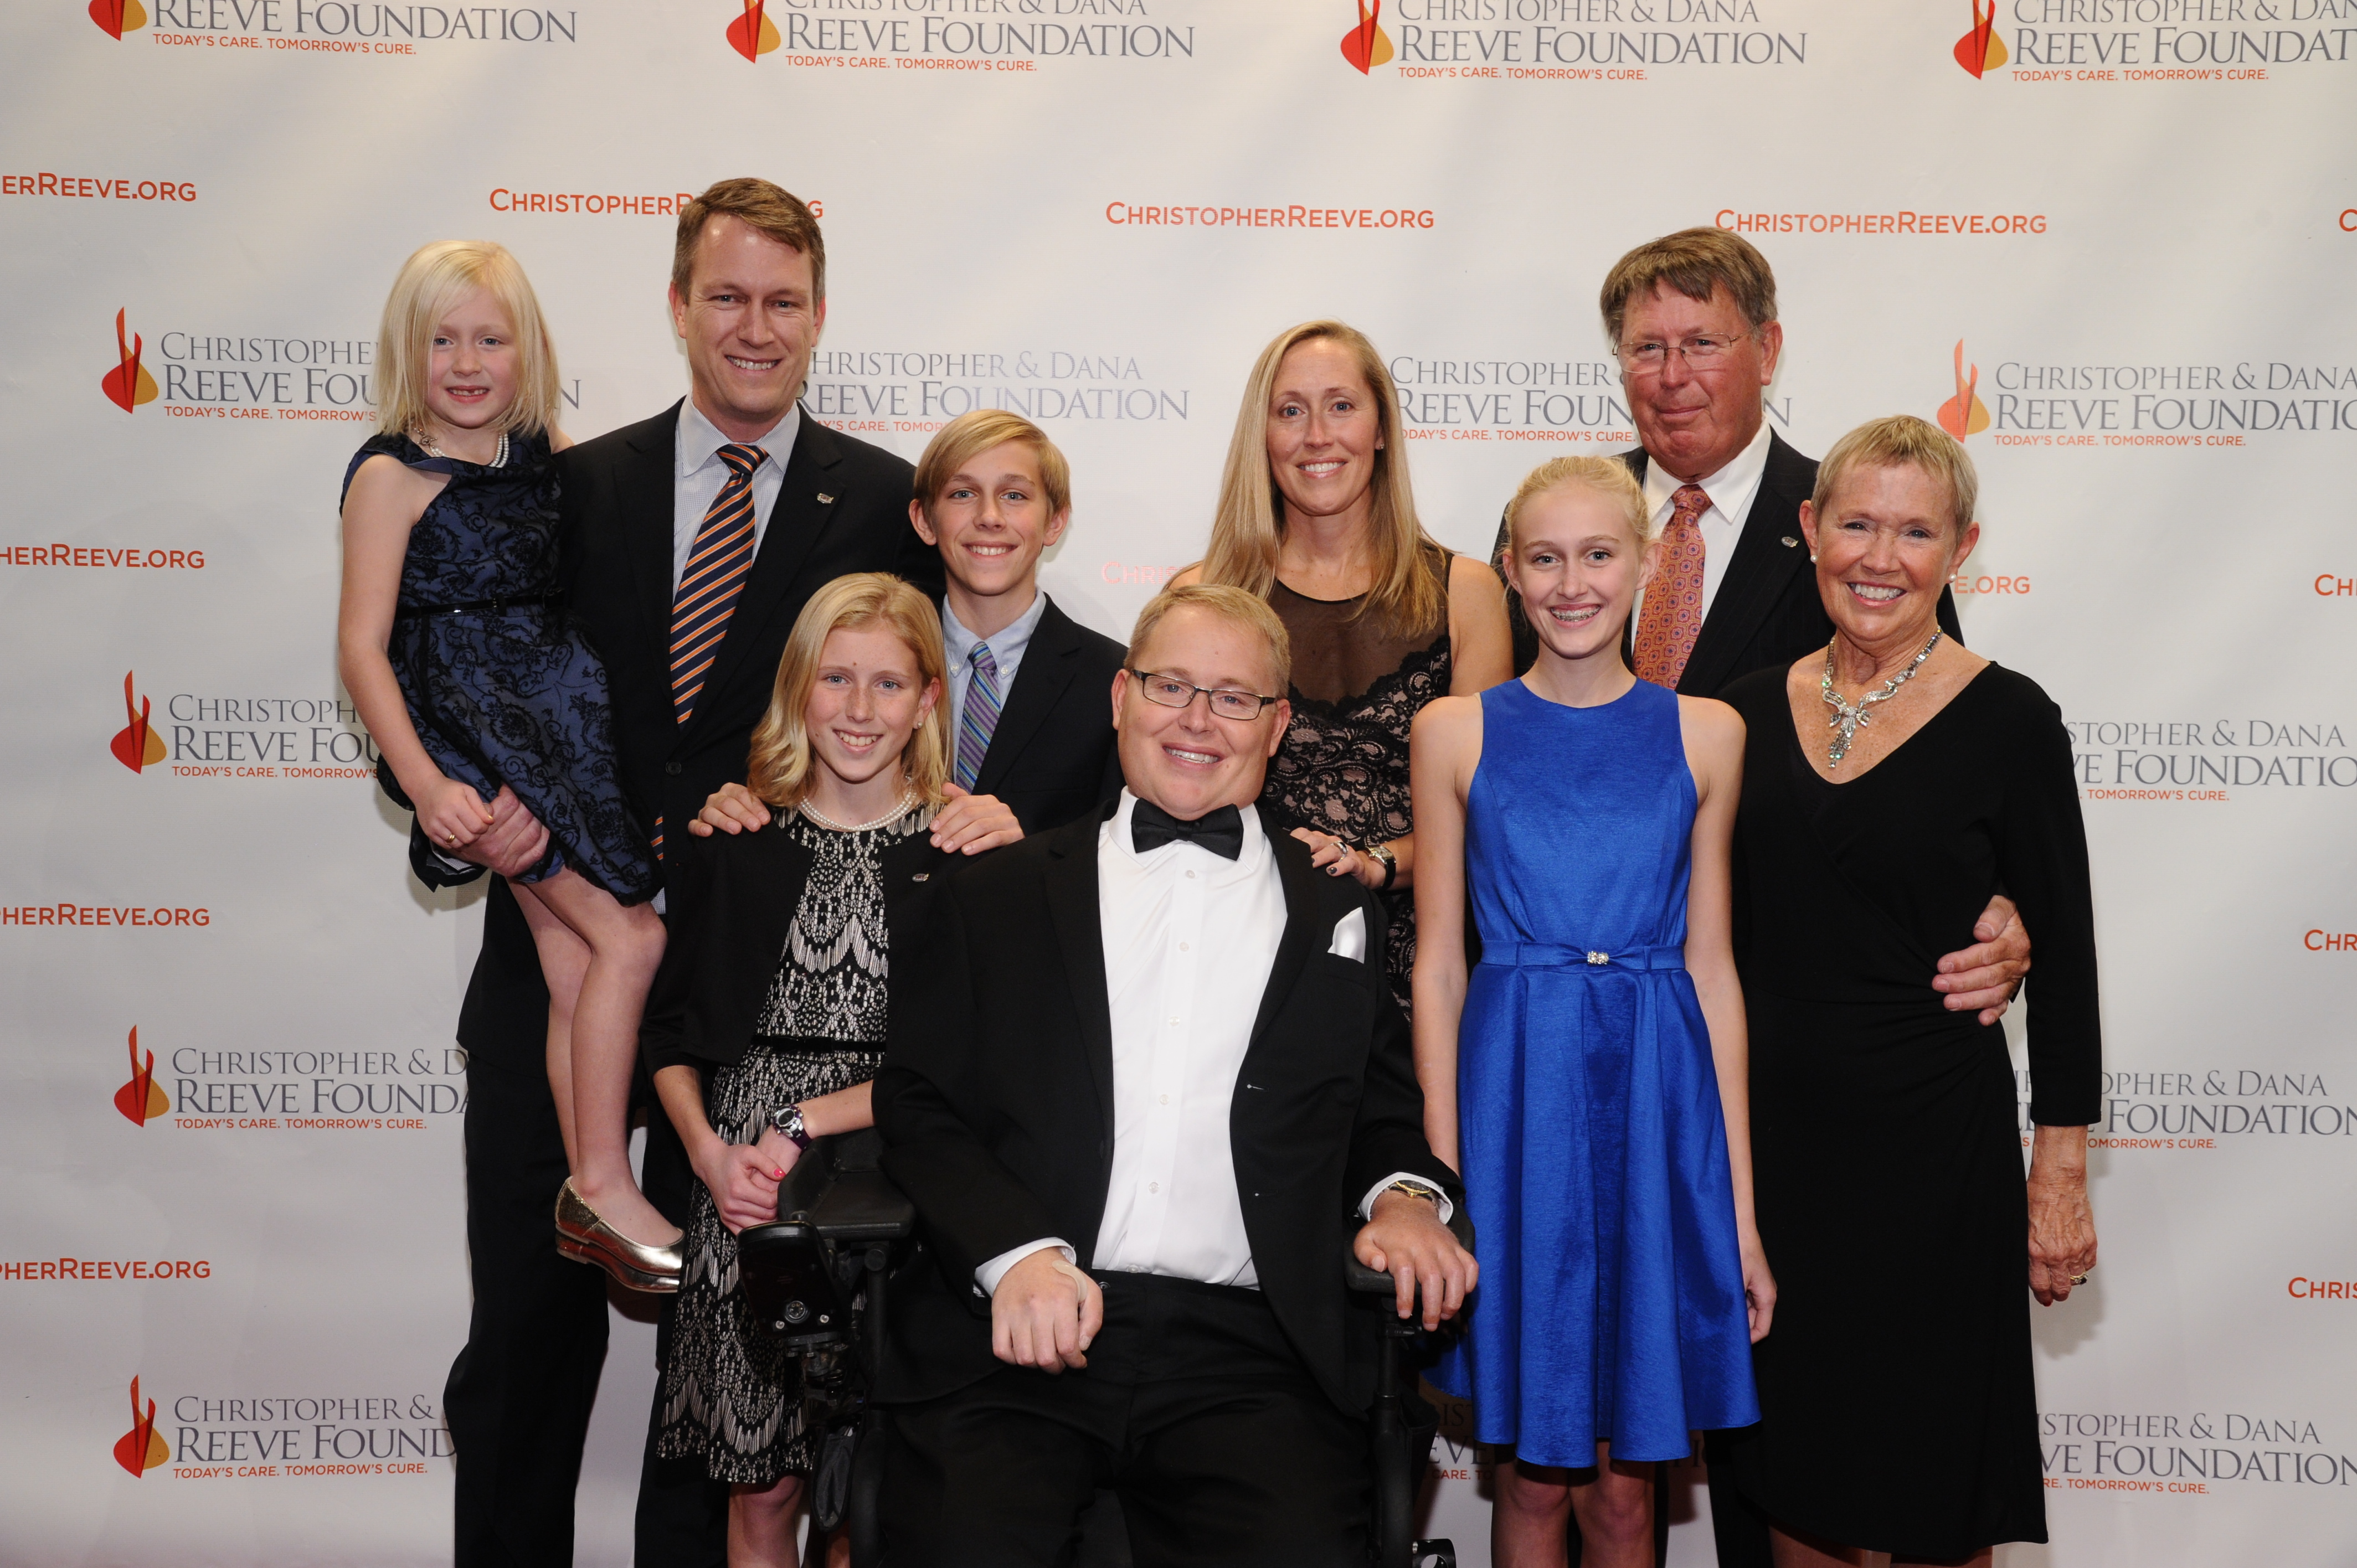 Travis Roy and his family at the Reeve Foundation's A Magical Evening in 2014.